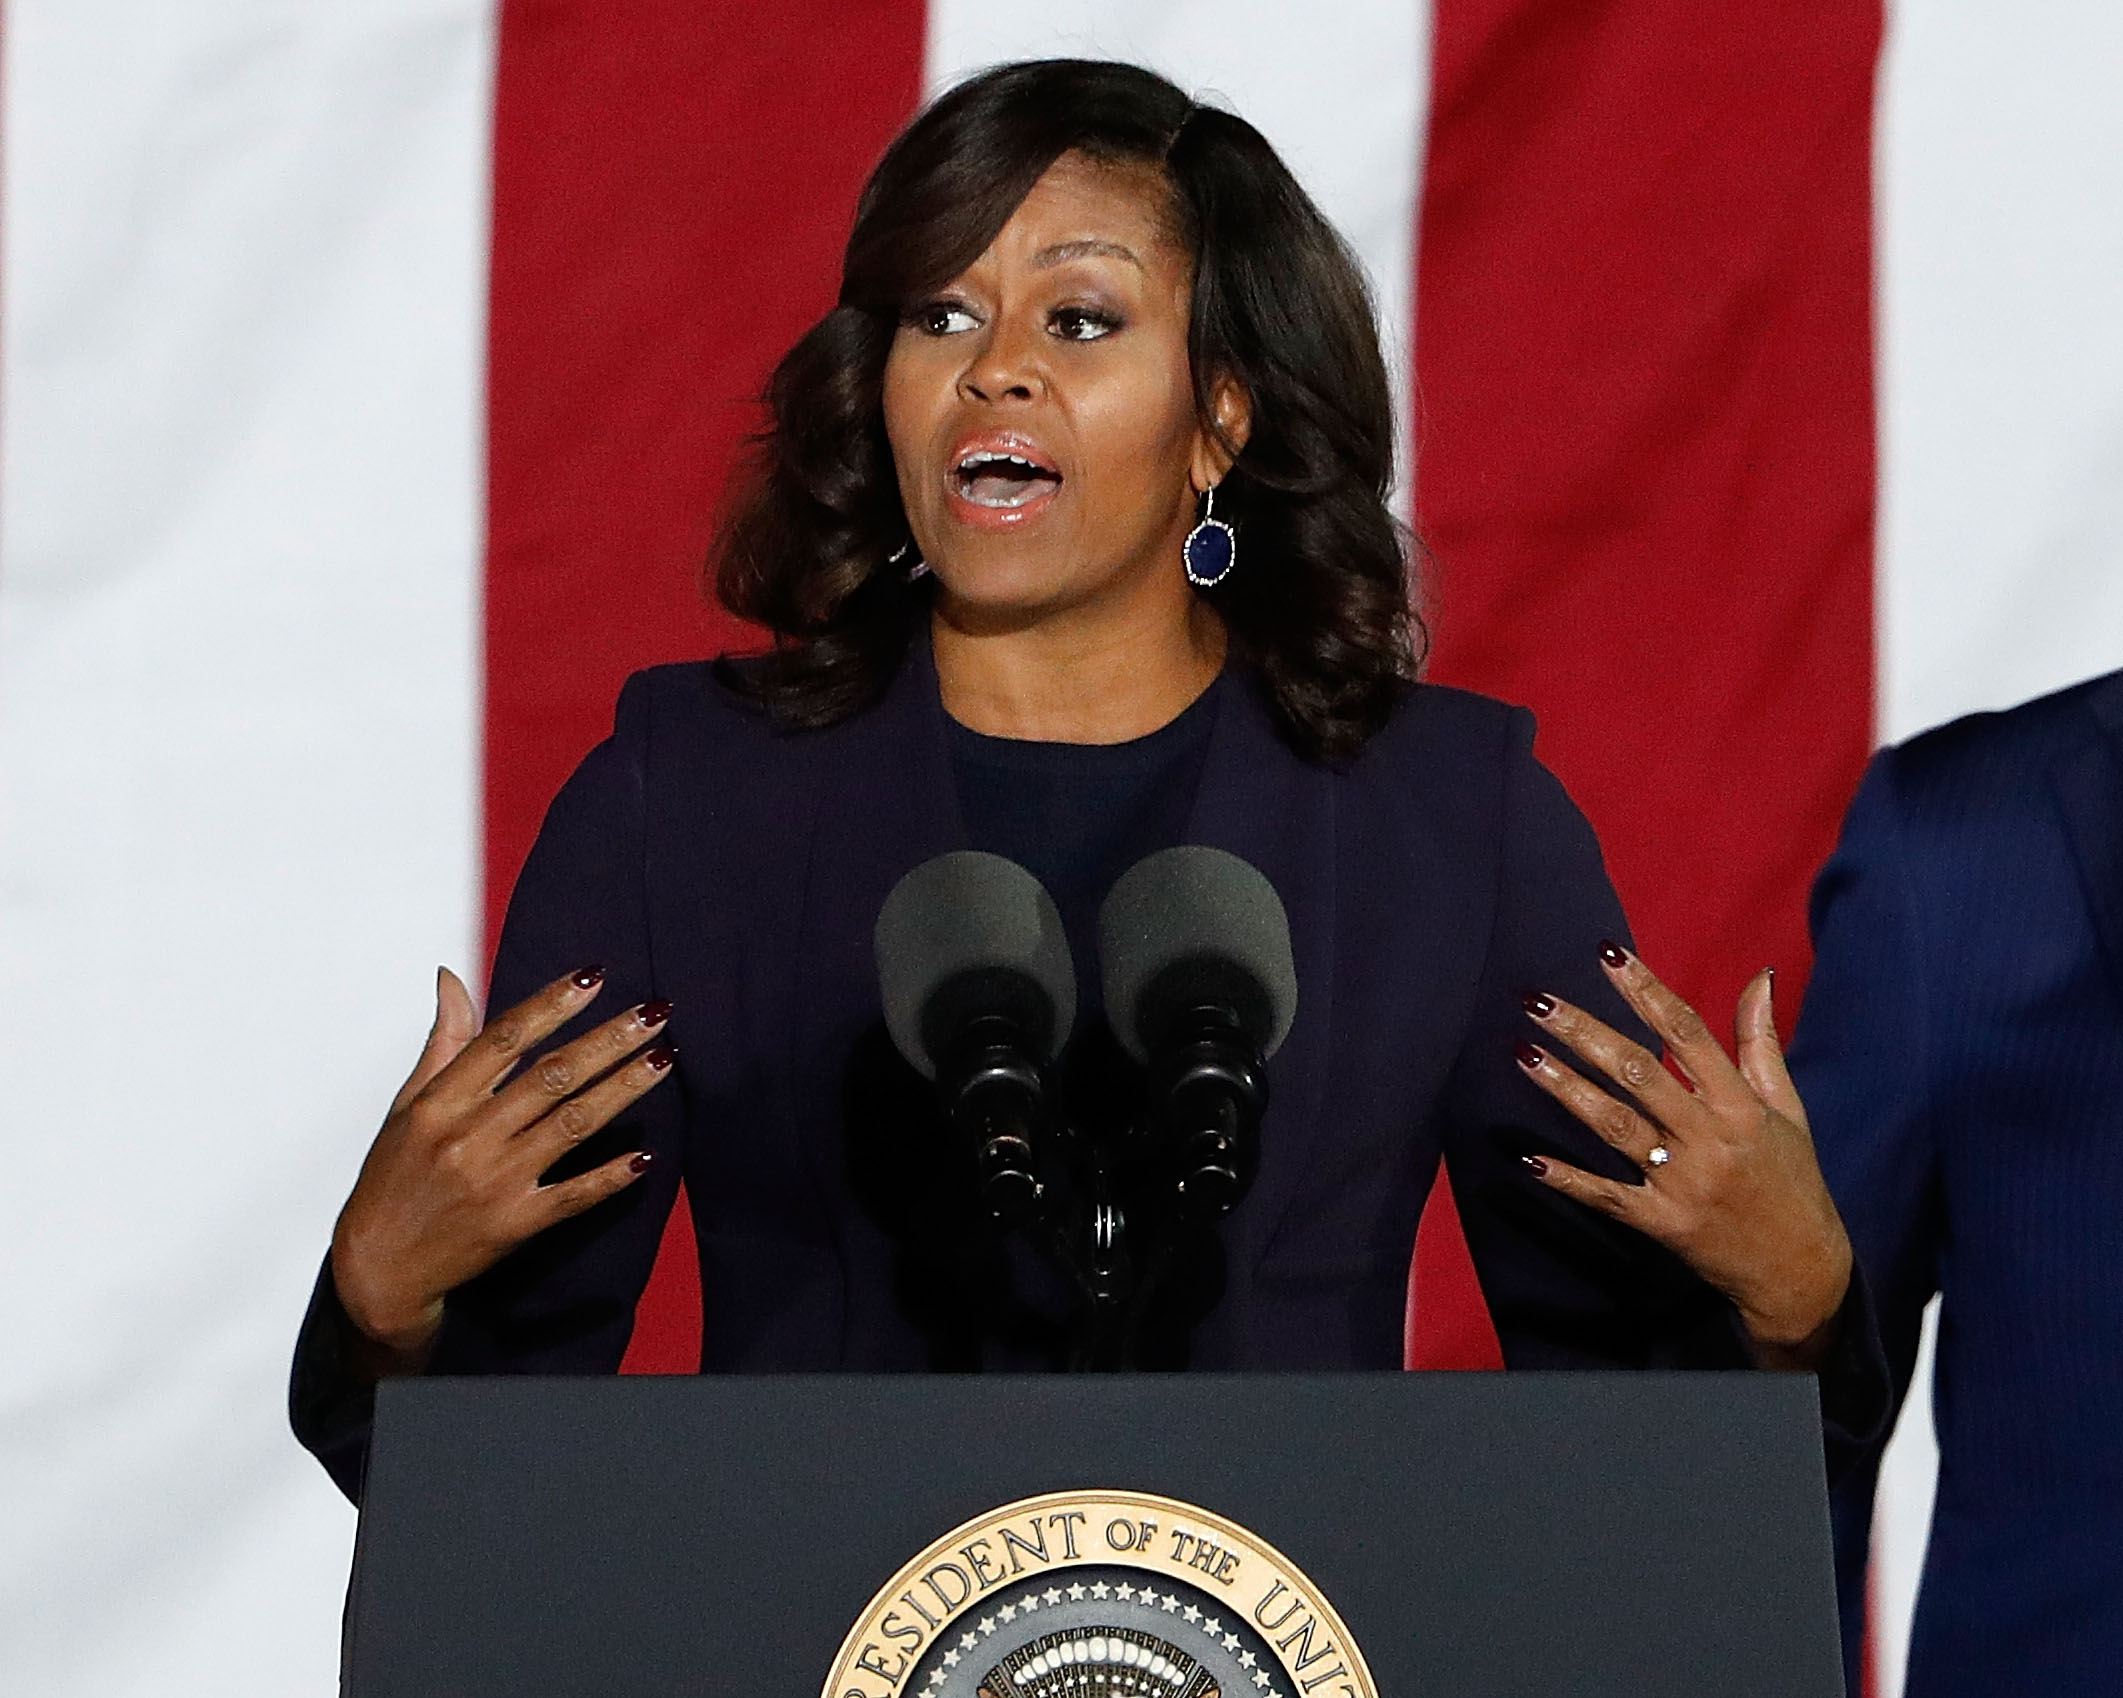 West Virginia Town Official Fired For Calling Michelle Obama An 'Ape In Heels'